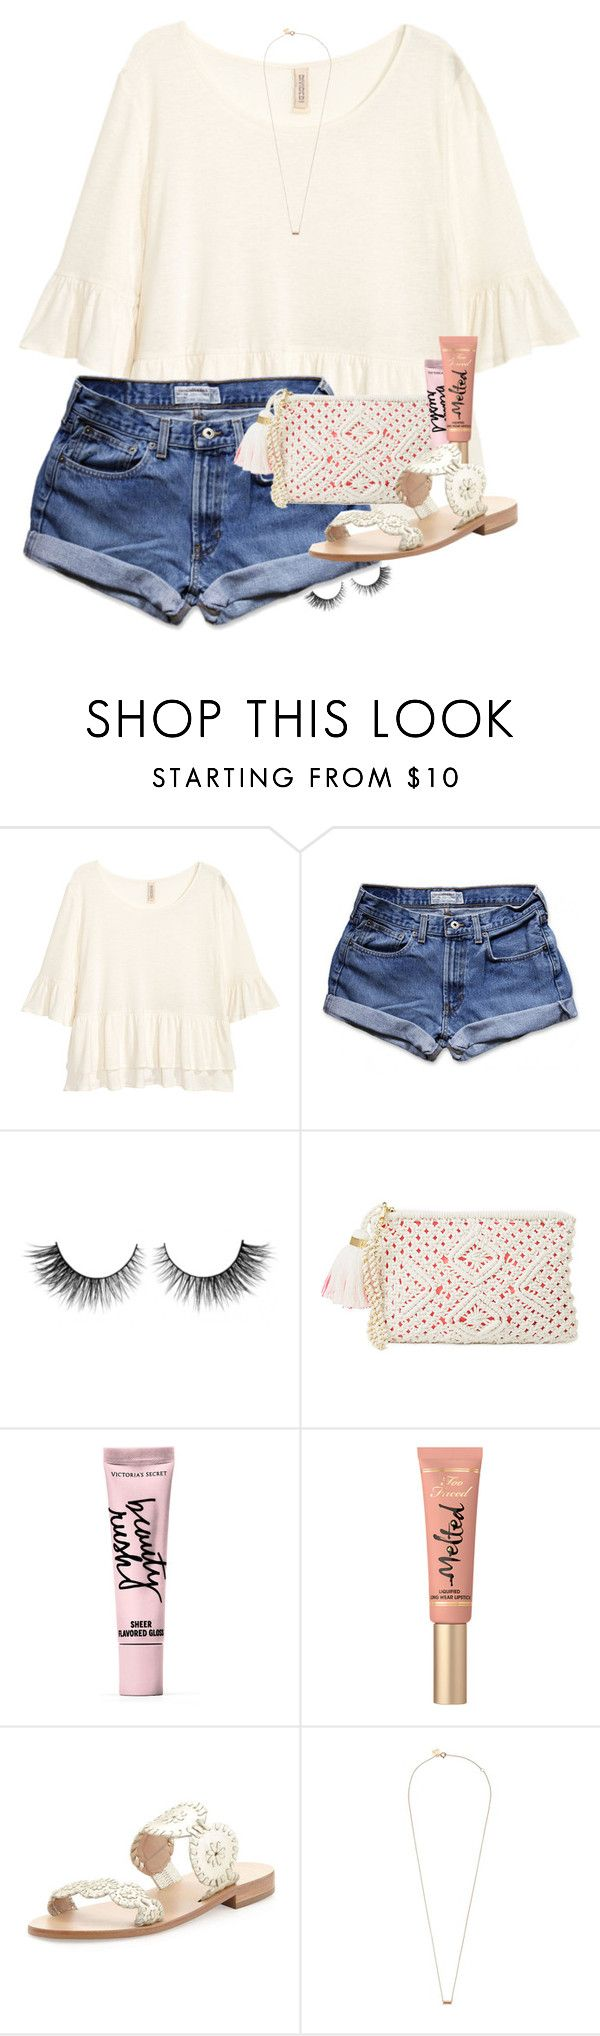 """""""No one has it all figured out"""" by erinlmarkel ❤ liked on Polyvore featuring Abercrombie & Fitch, Rimini, Lilly Pulitzer, Beauty Rush, Too Faced Cosmetics, Jack Rogers and Ginette NY"""